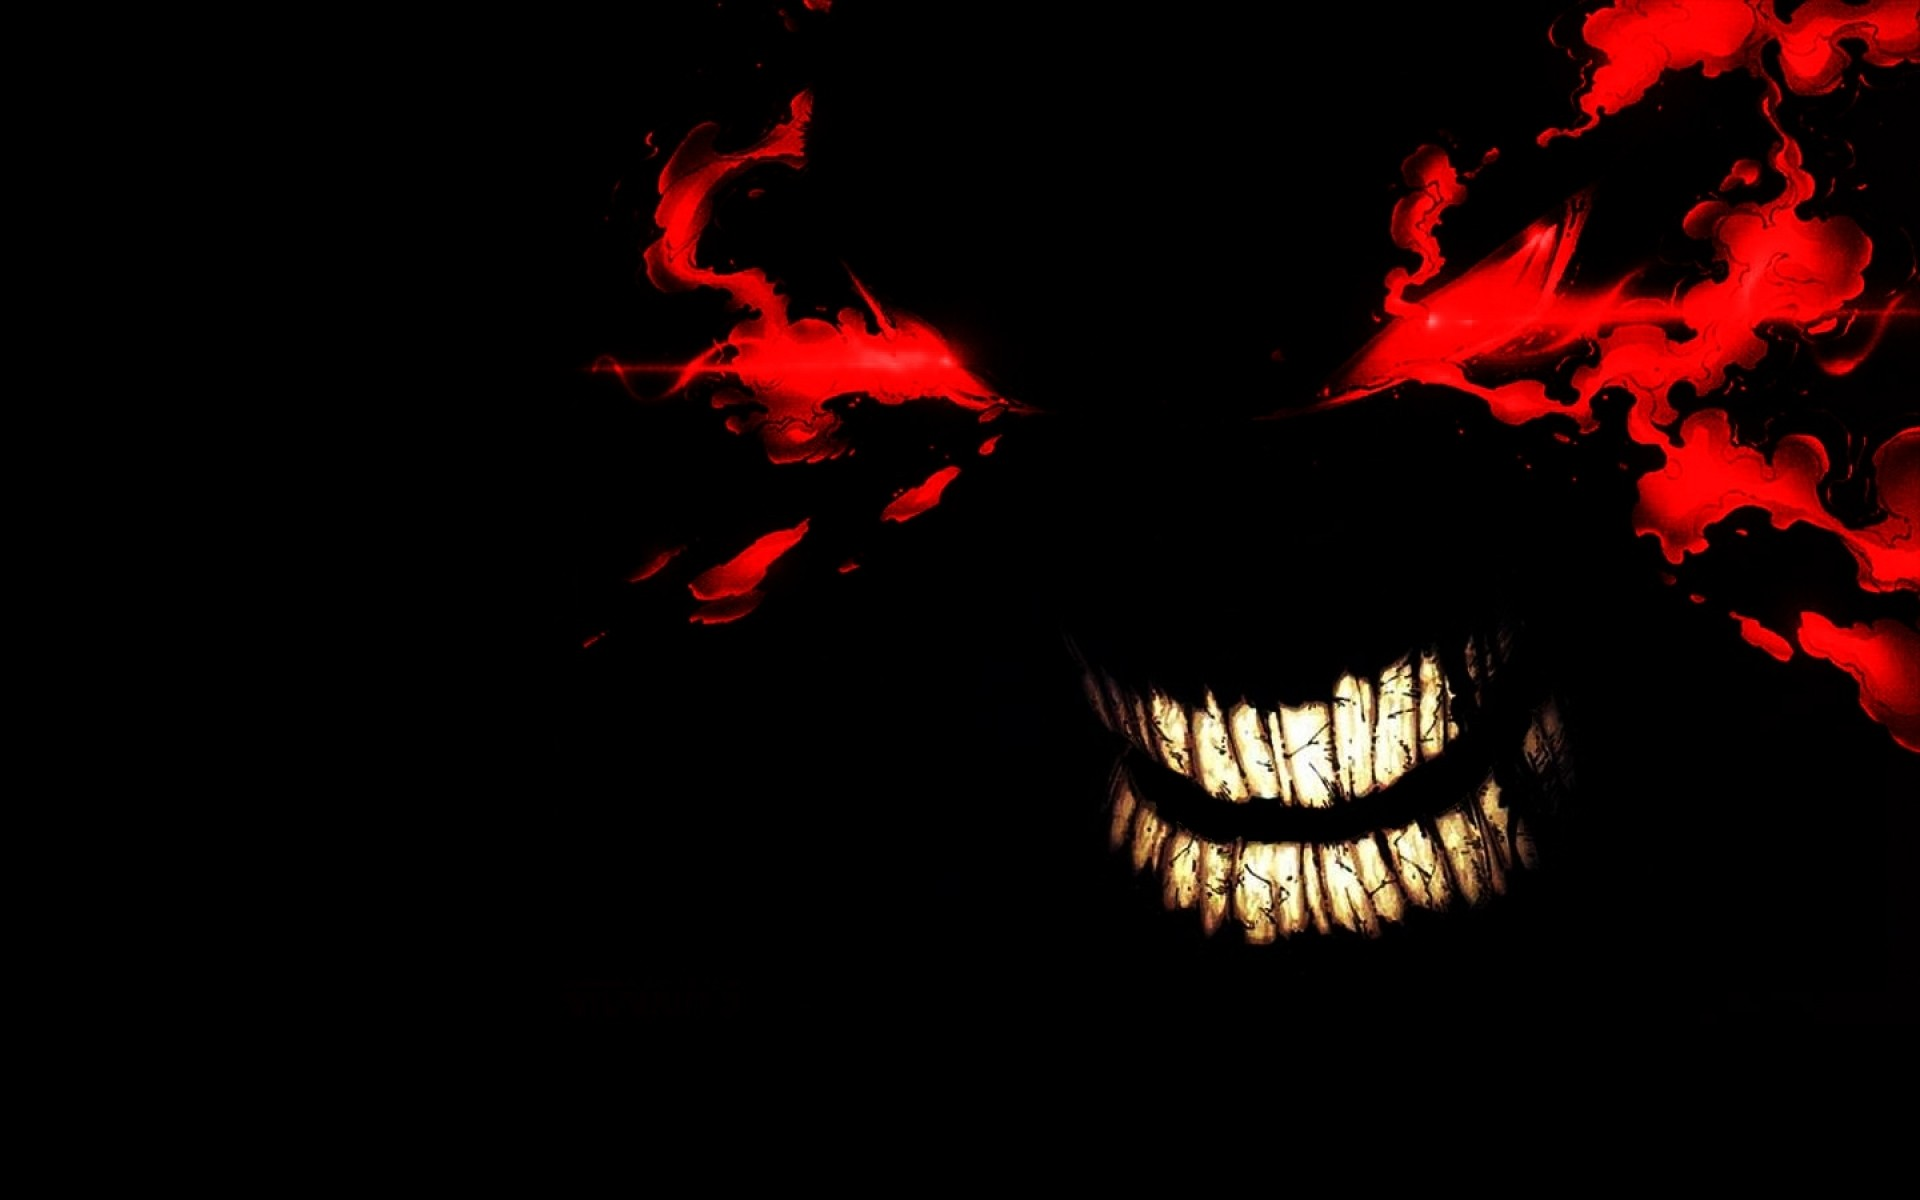 Animated Wallpapers Free Download For Xp Red Devil Wallpaper 71 Images